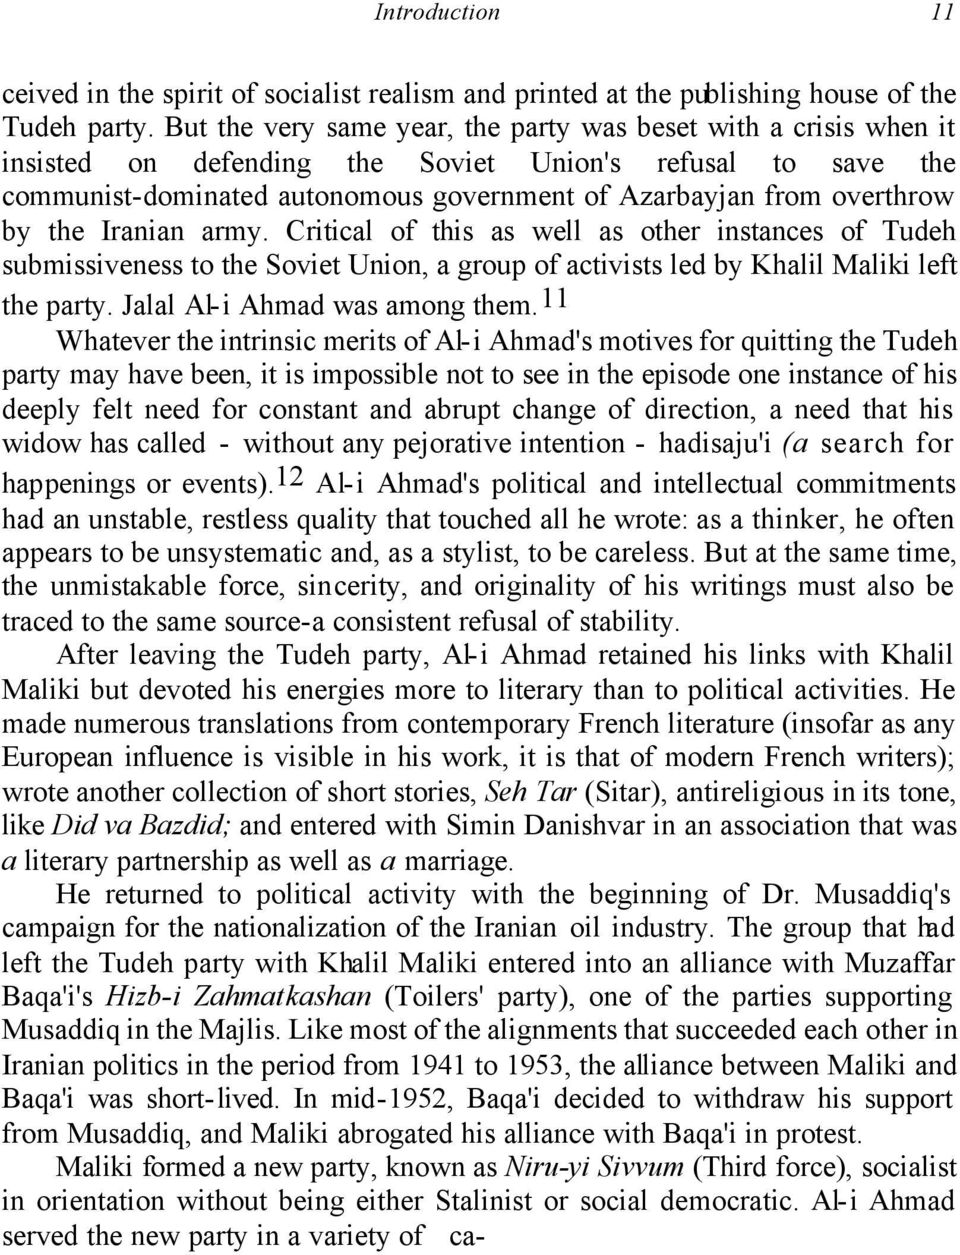 by the Iranian army. Critical of this as well as other instances of Tudeh submissiveness to the Soviet Union, a group of activists led by Khalil Maliki left the party. Jalal Al-i Ahmad was among them.